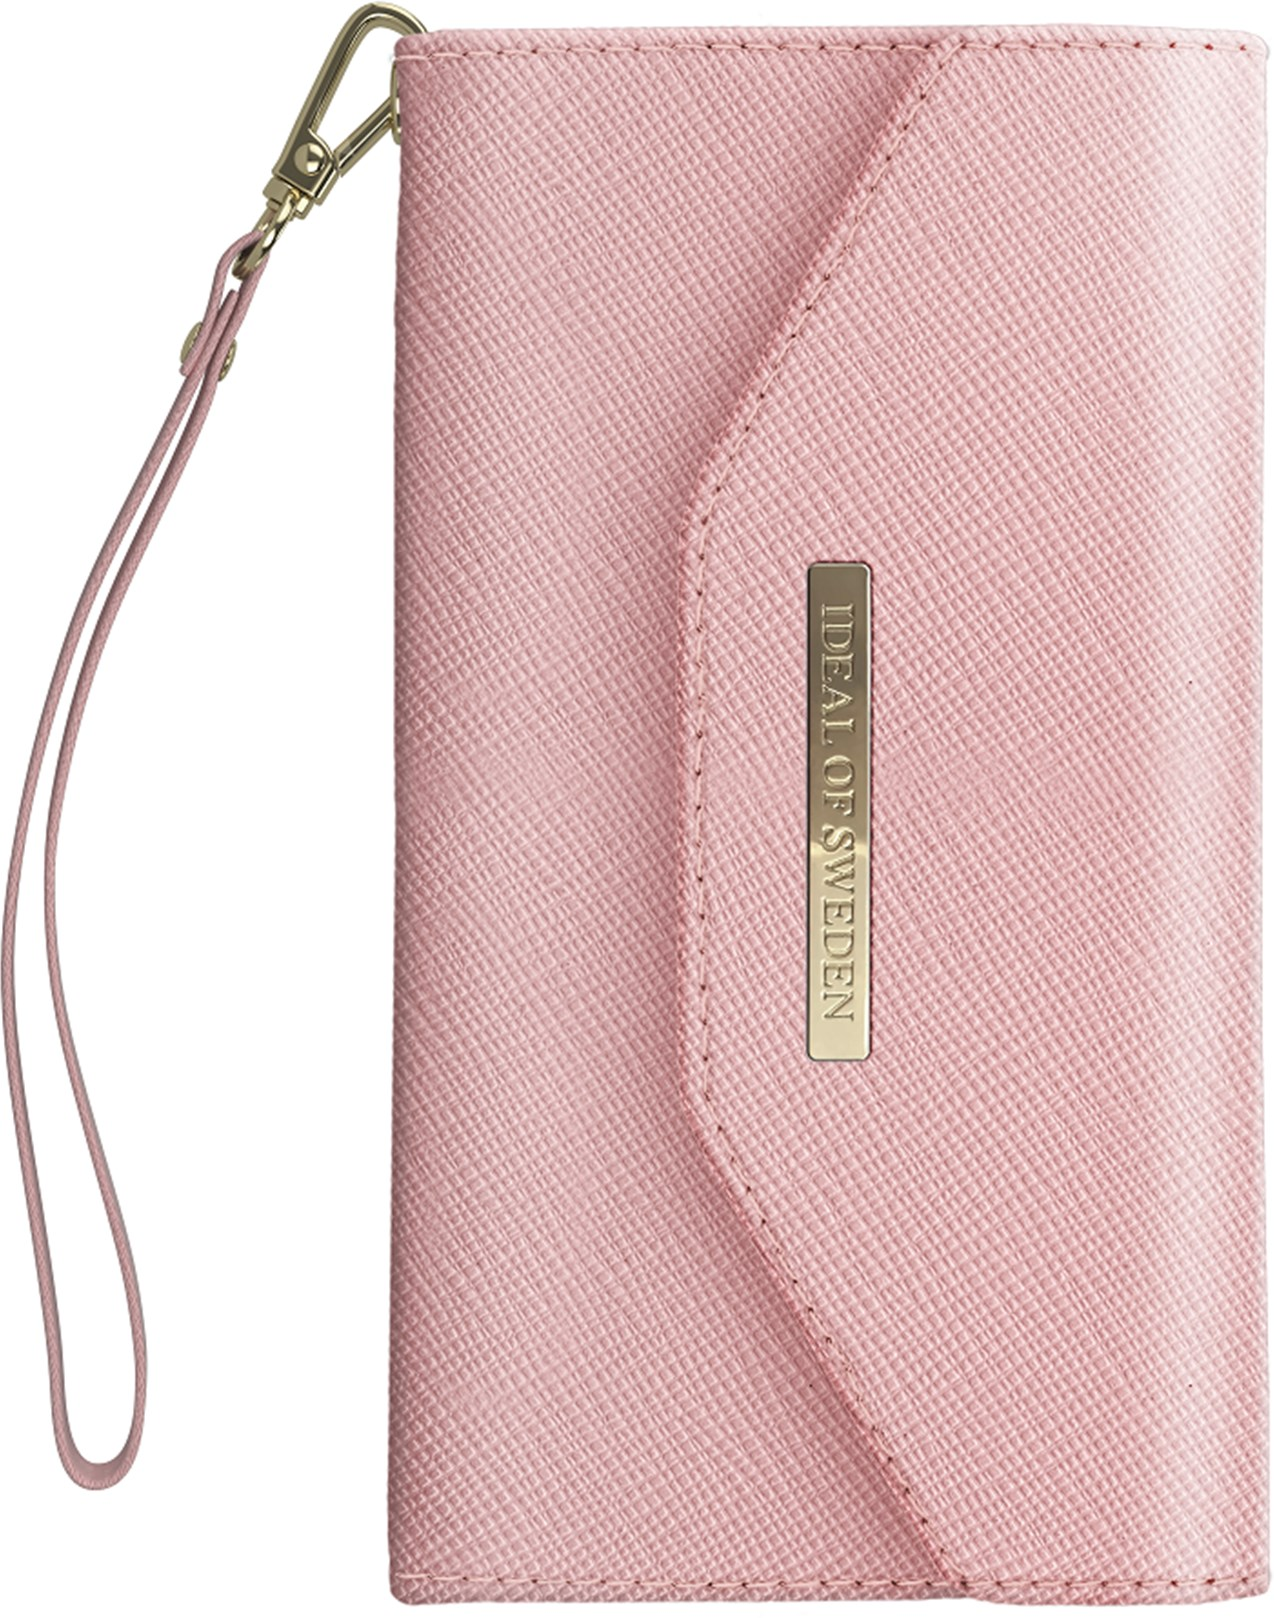 iDeal of Sweden Ideal Mayfair Clutch Samsung Galaxy S10 Pink